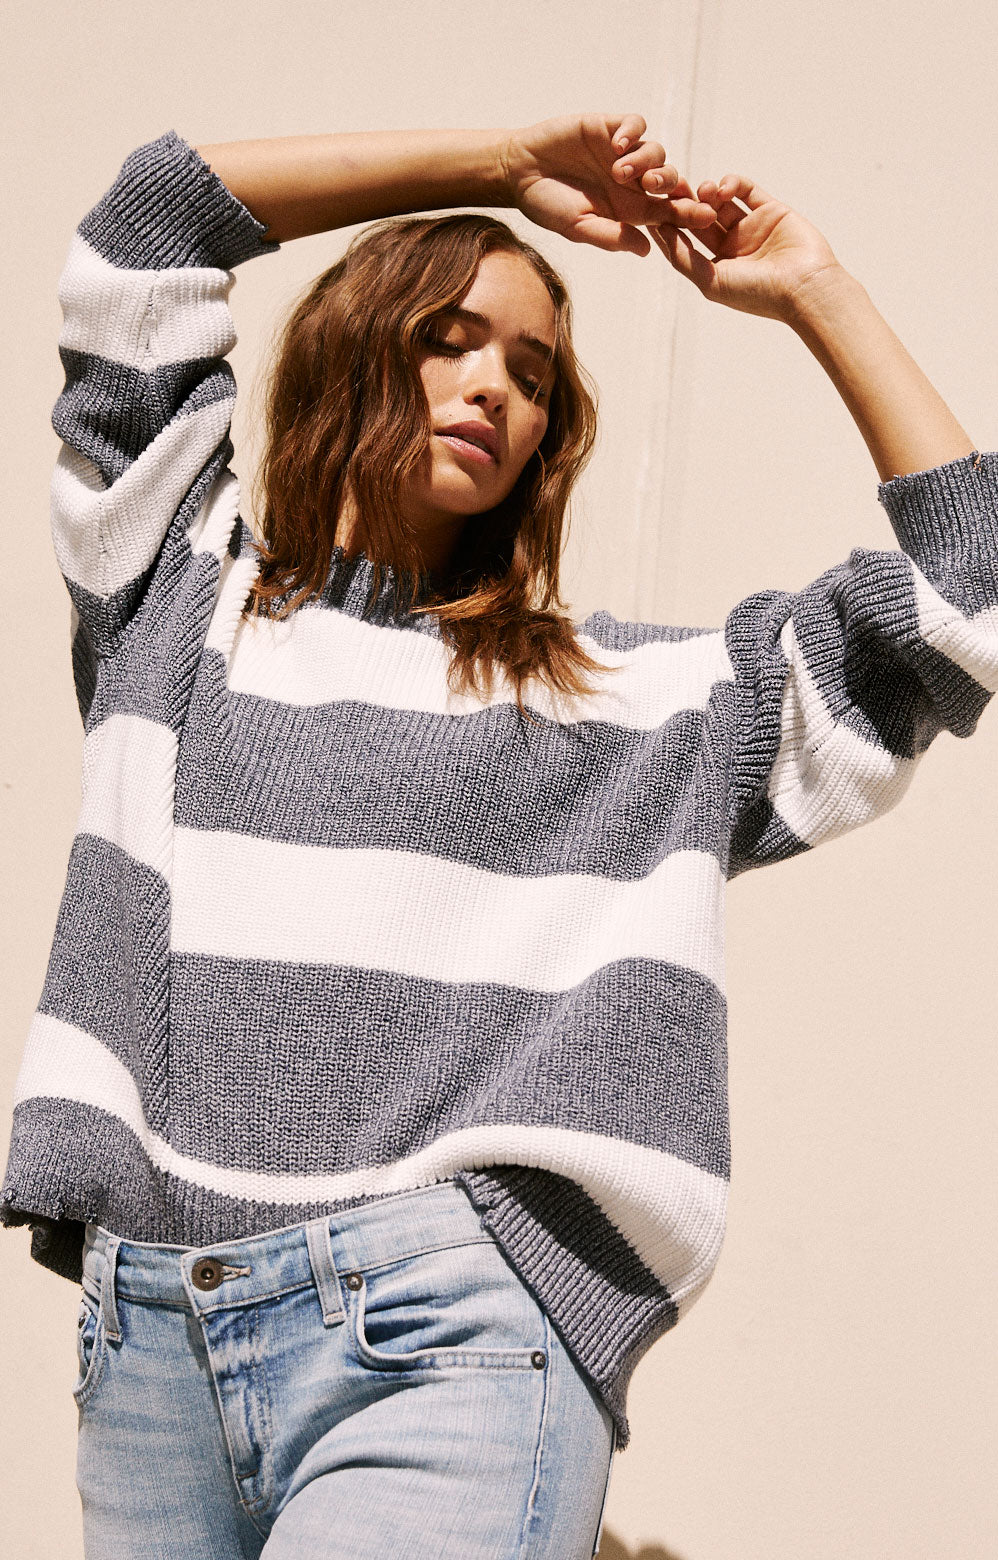 Eve Round-neck Pullover with Distressed Edges - White Navy Stripe